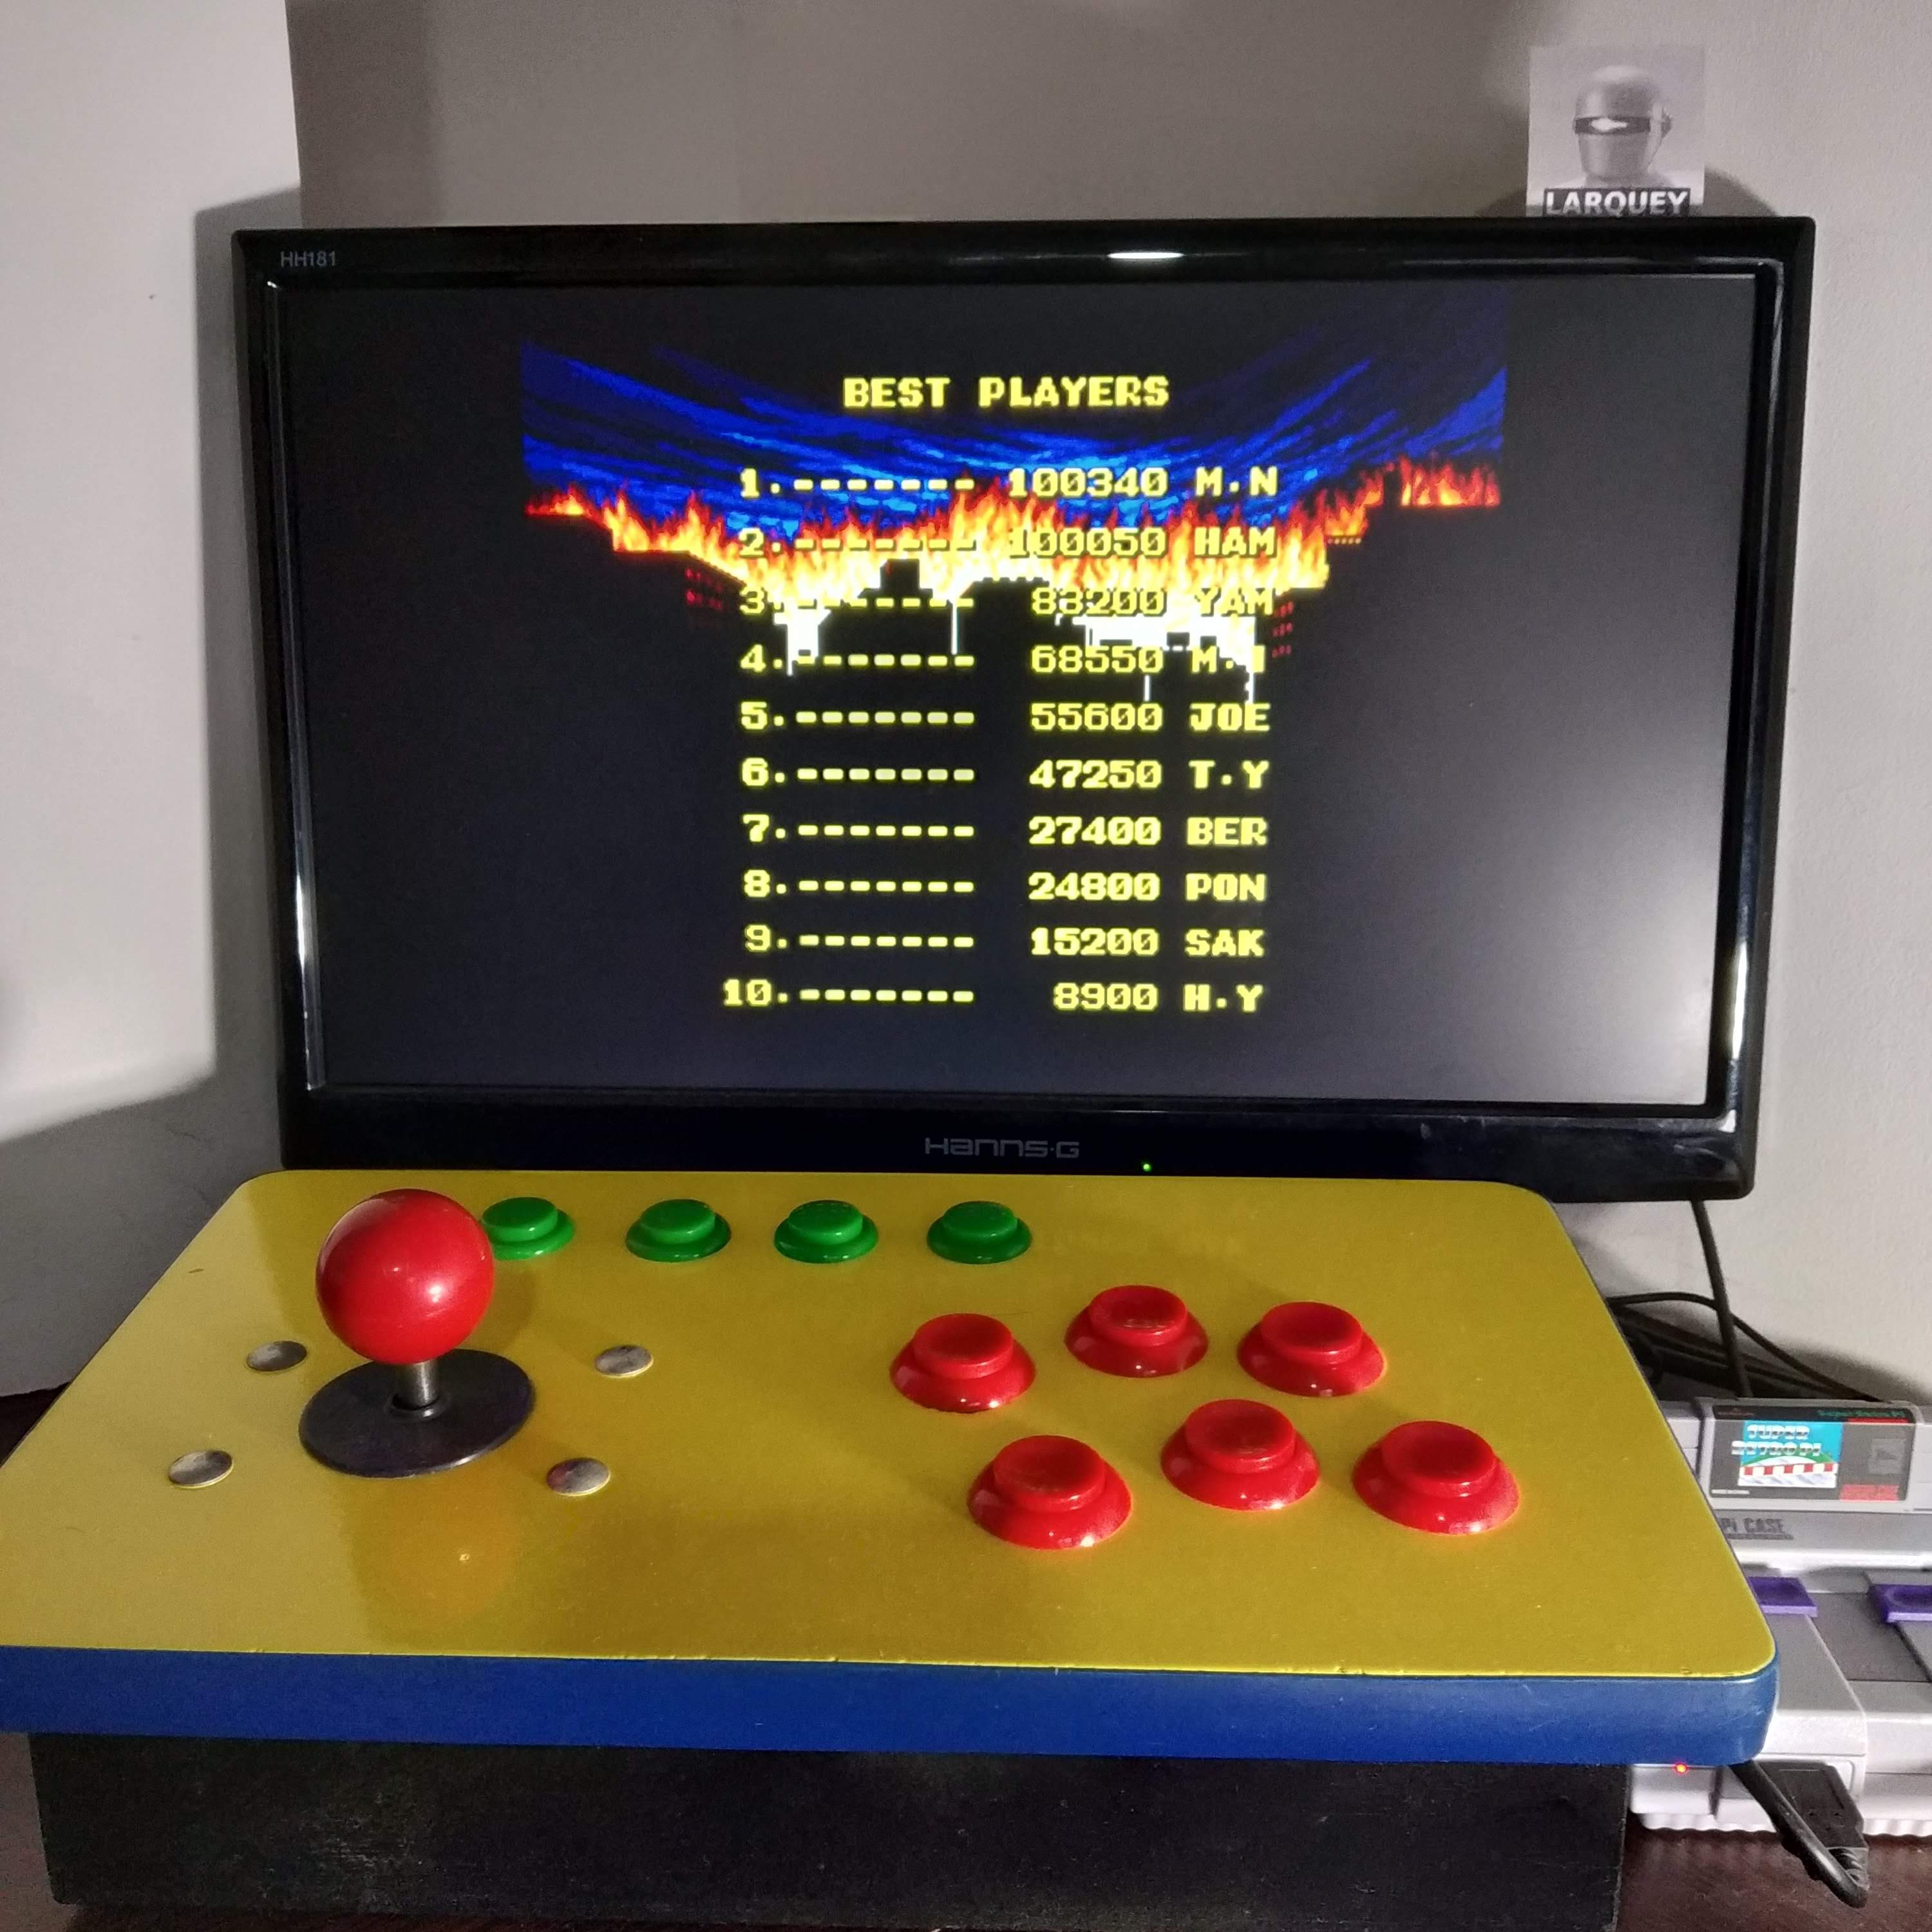 Larquey: King of the Monsters (Neo Geo Emulated) 27,400 points on 2020-07-11 03:03:43